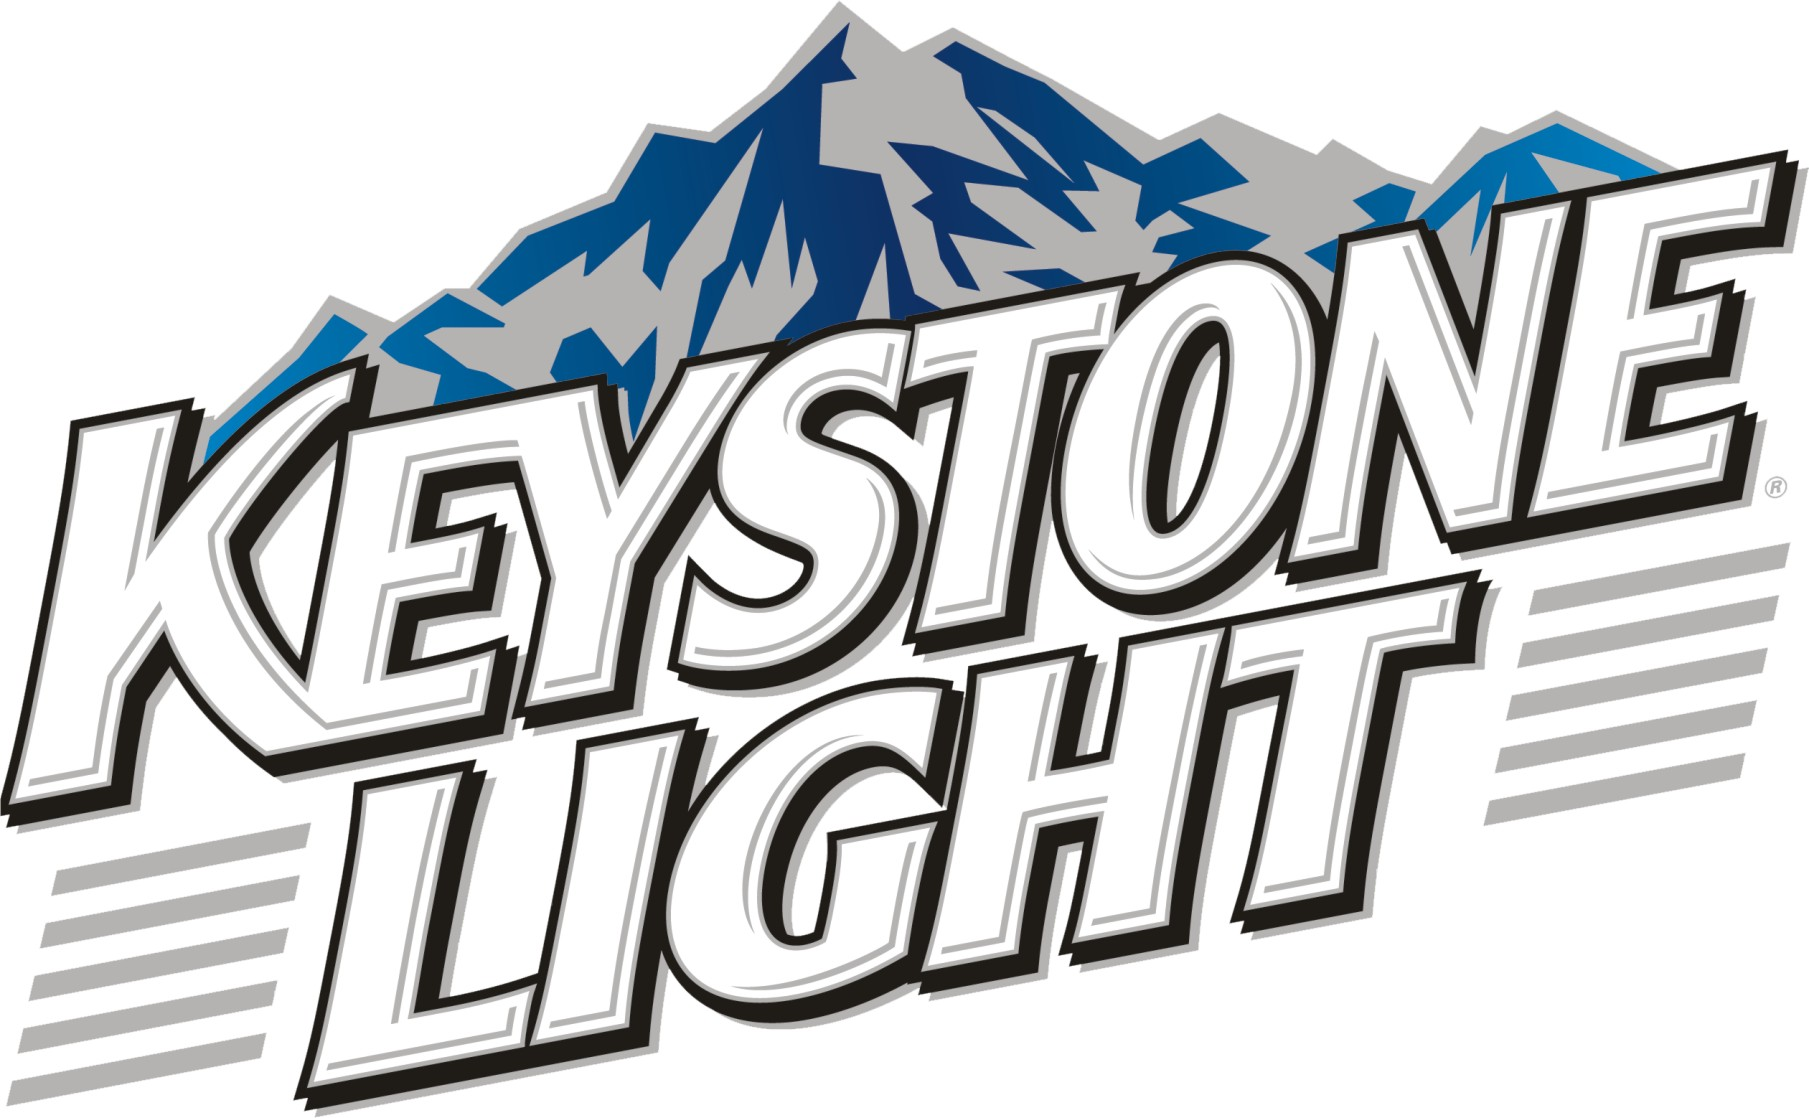 Keystone Light Beer